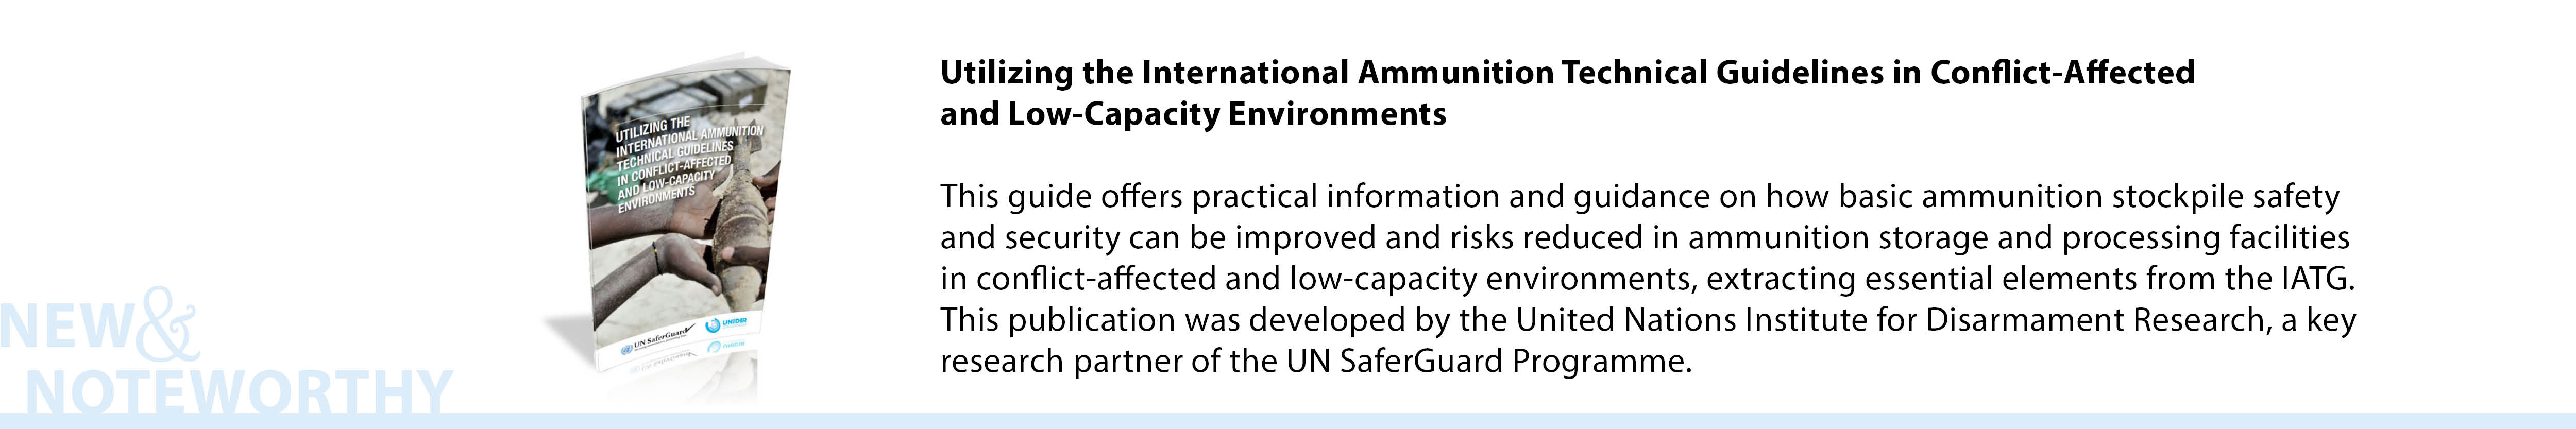 Utilizing the International Ammunition Technical Guidelines in Conflict-Affected and Low-Capacity Environments - This guide offers practical information and guidance on how basic ammunition stockpile safety and security can be improved and risks reduced in ammunition storage and processing facilities in conflict-affected and low-capacity environments, extracting essential elements from the IATG. This publication was developed by the United Nations Institute for Disarmament Research, a key research partner of the UN SaferGuard Programme.